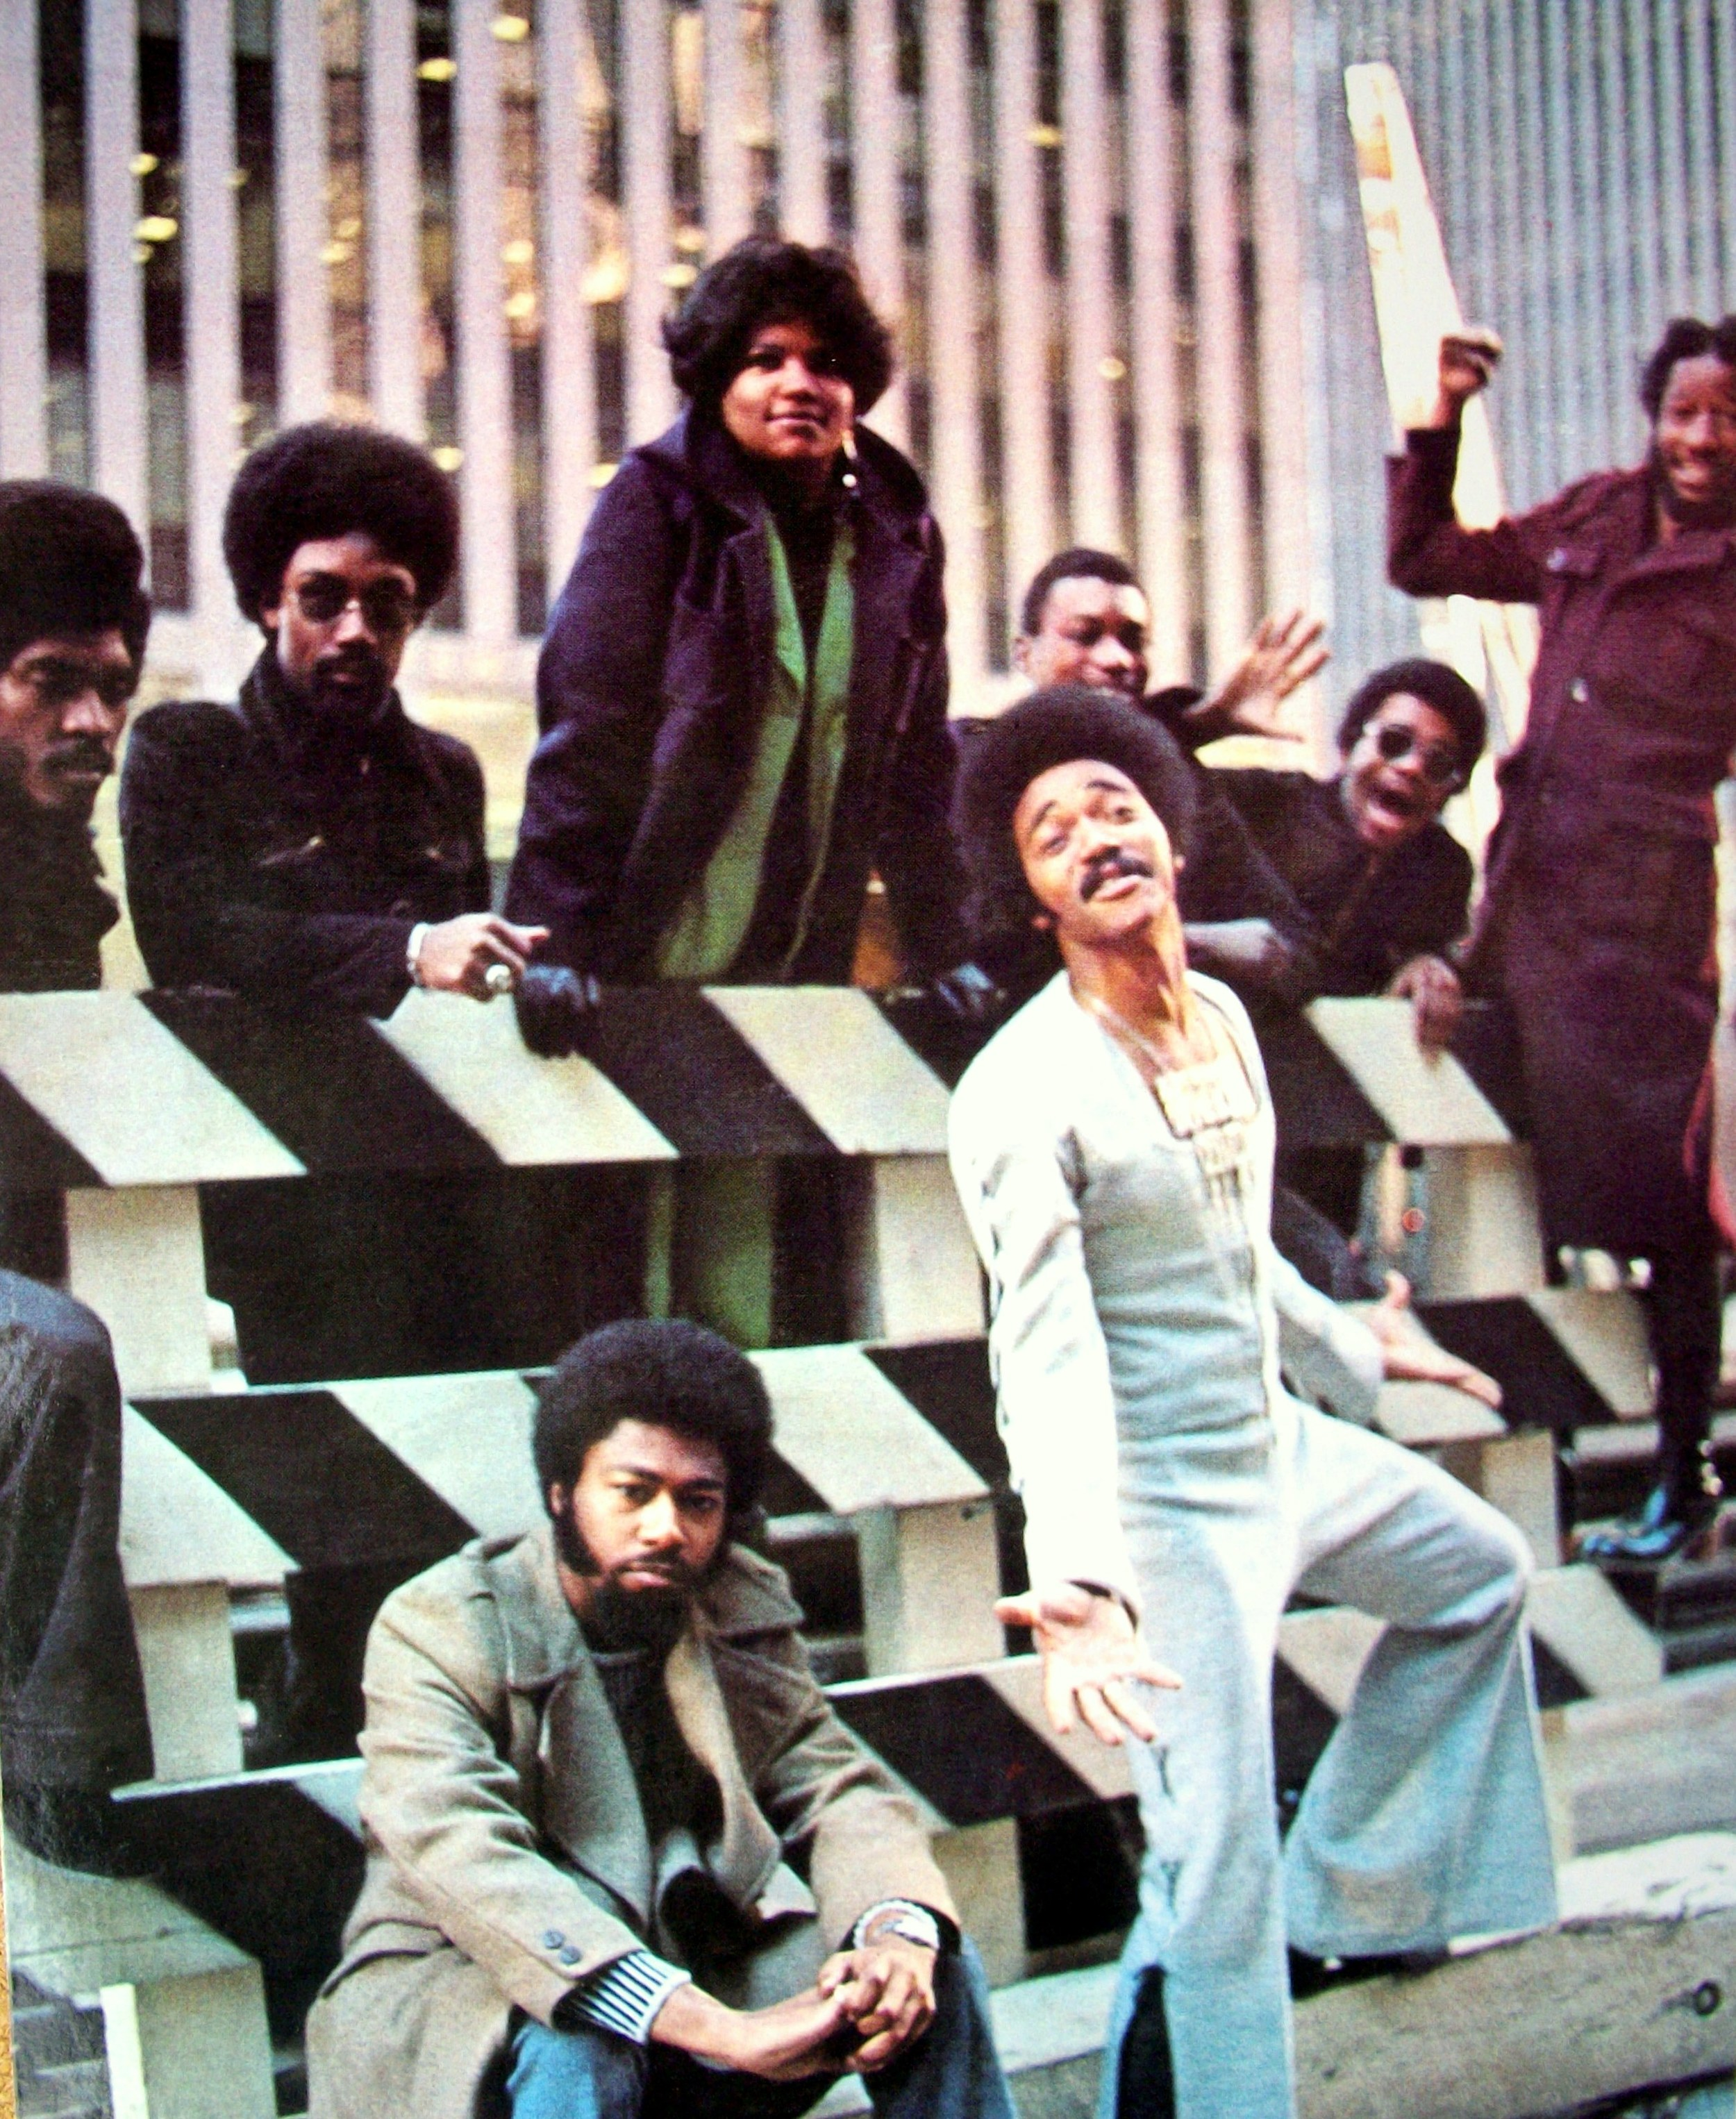 Joe Quarterman and the Free Soul was a funk band reaching fame in the early 1970s, coming straight from Washington DC.